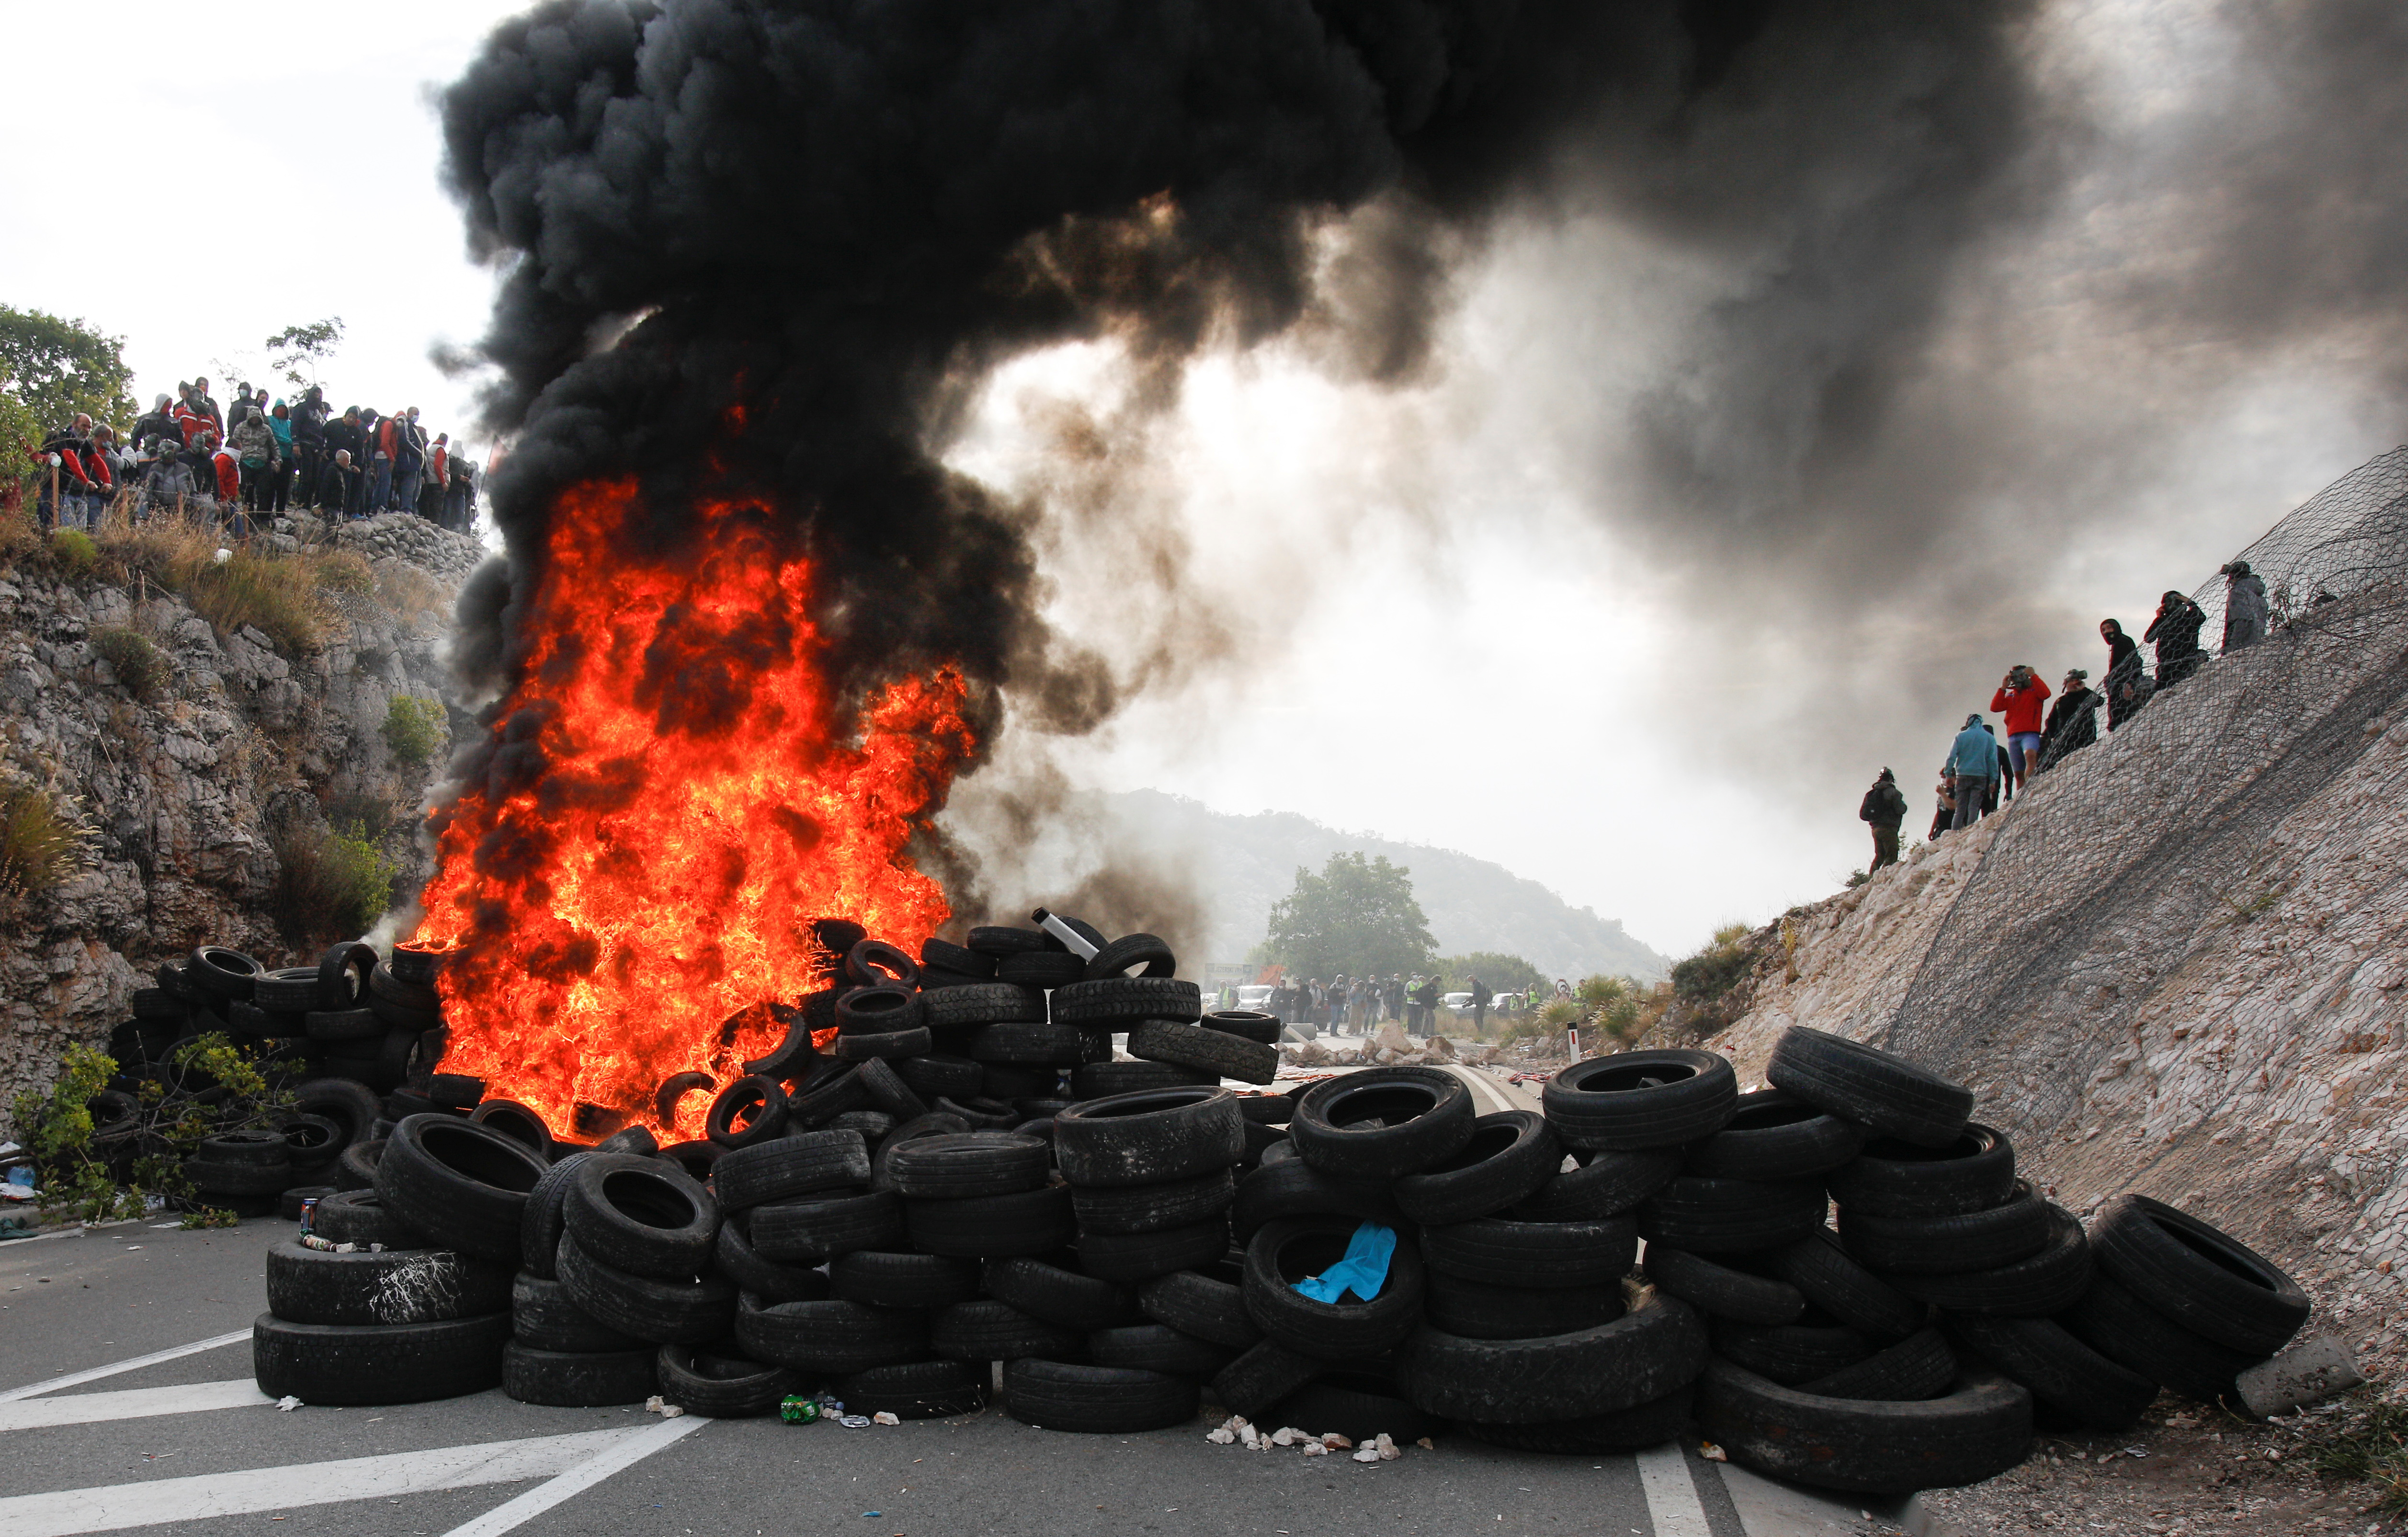 A barricade is set on fire during a protest against the enthronement of Bishop Joanikije in Cetinje, Montenegro, September 5, 2021. REUTERS/Stevo Vasiljevic